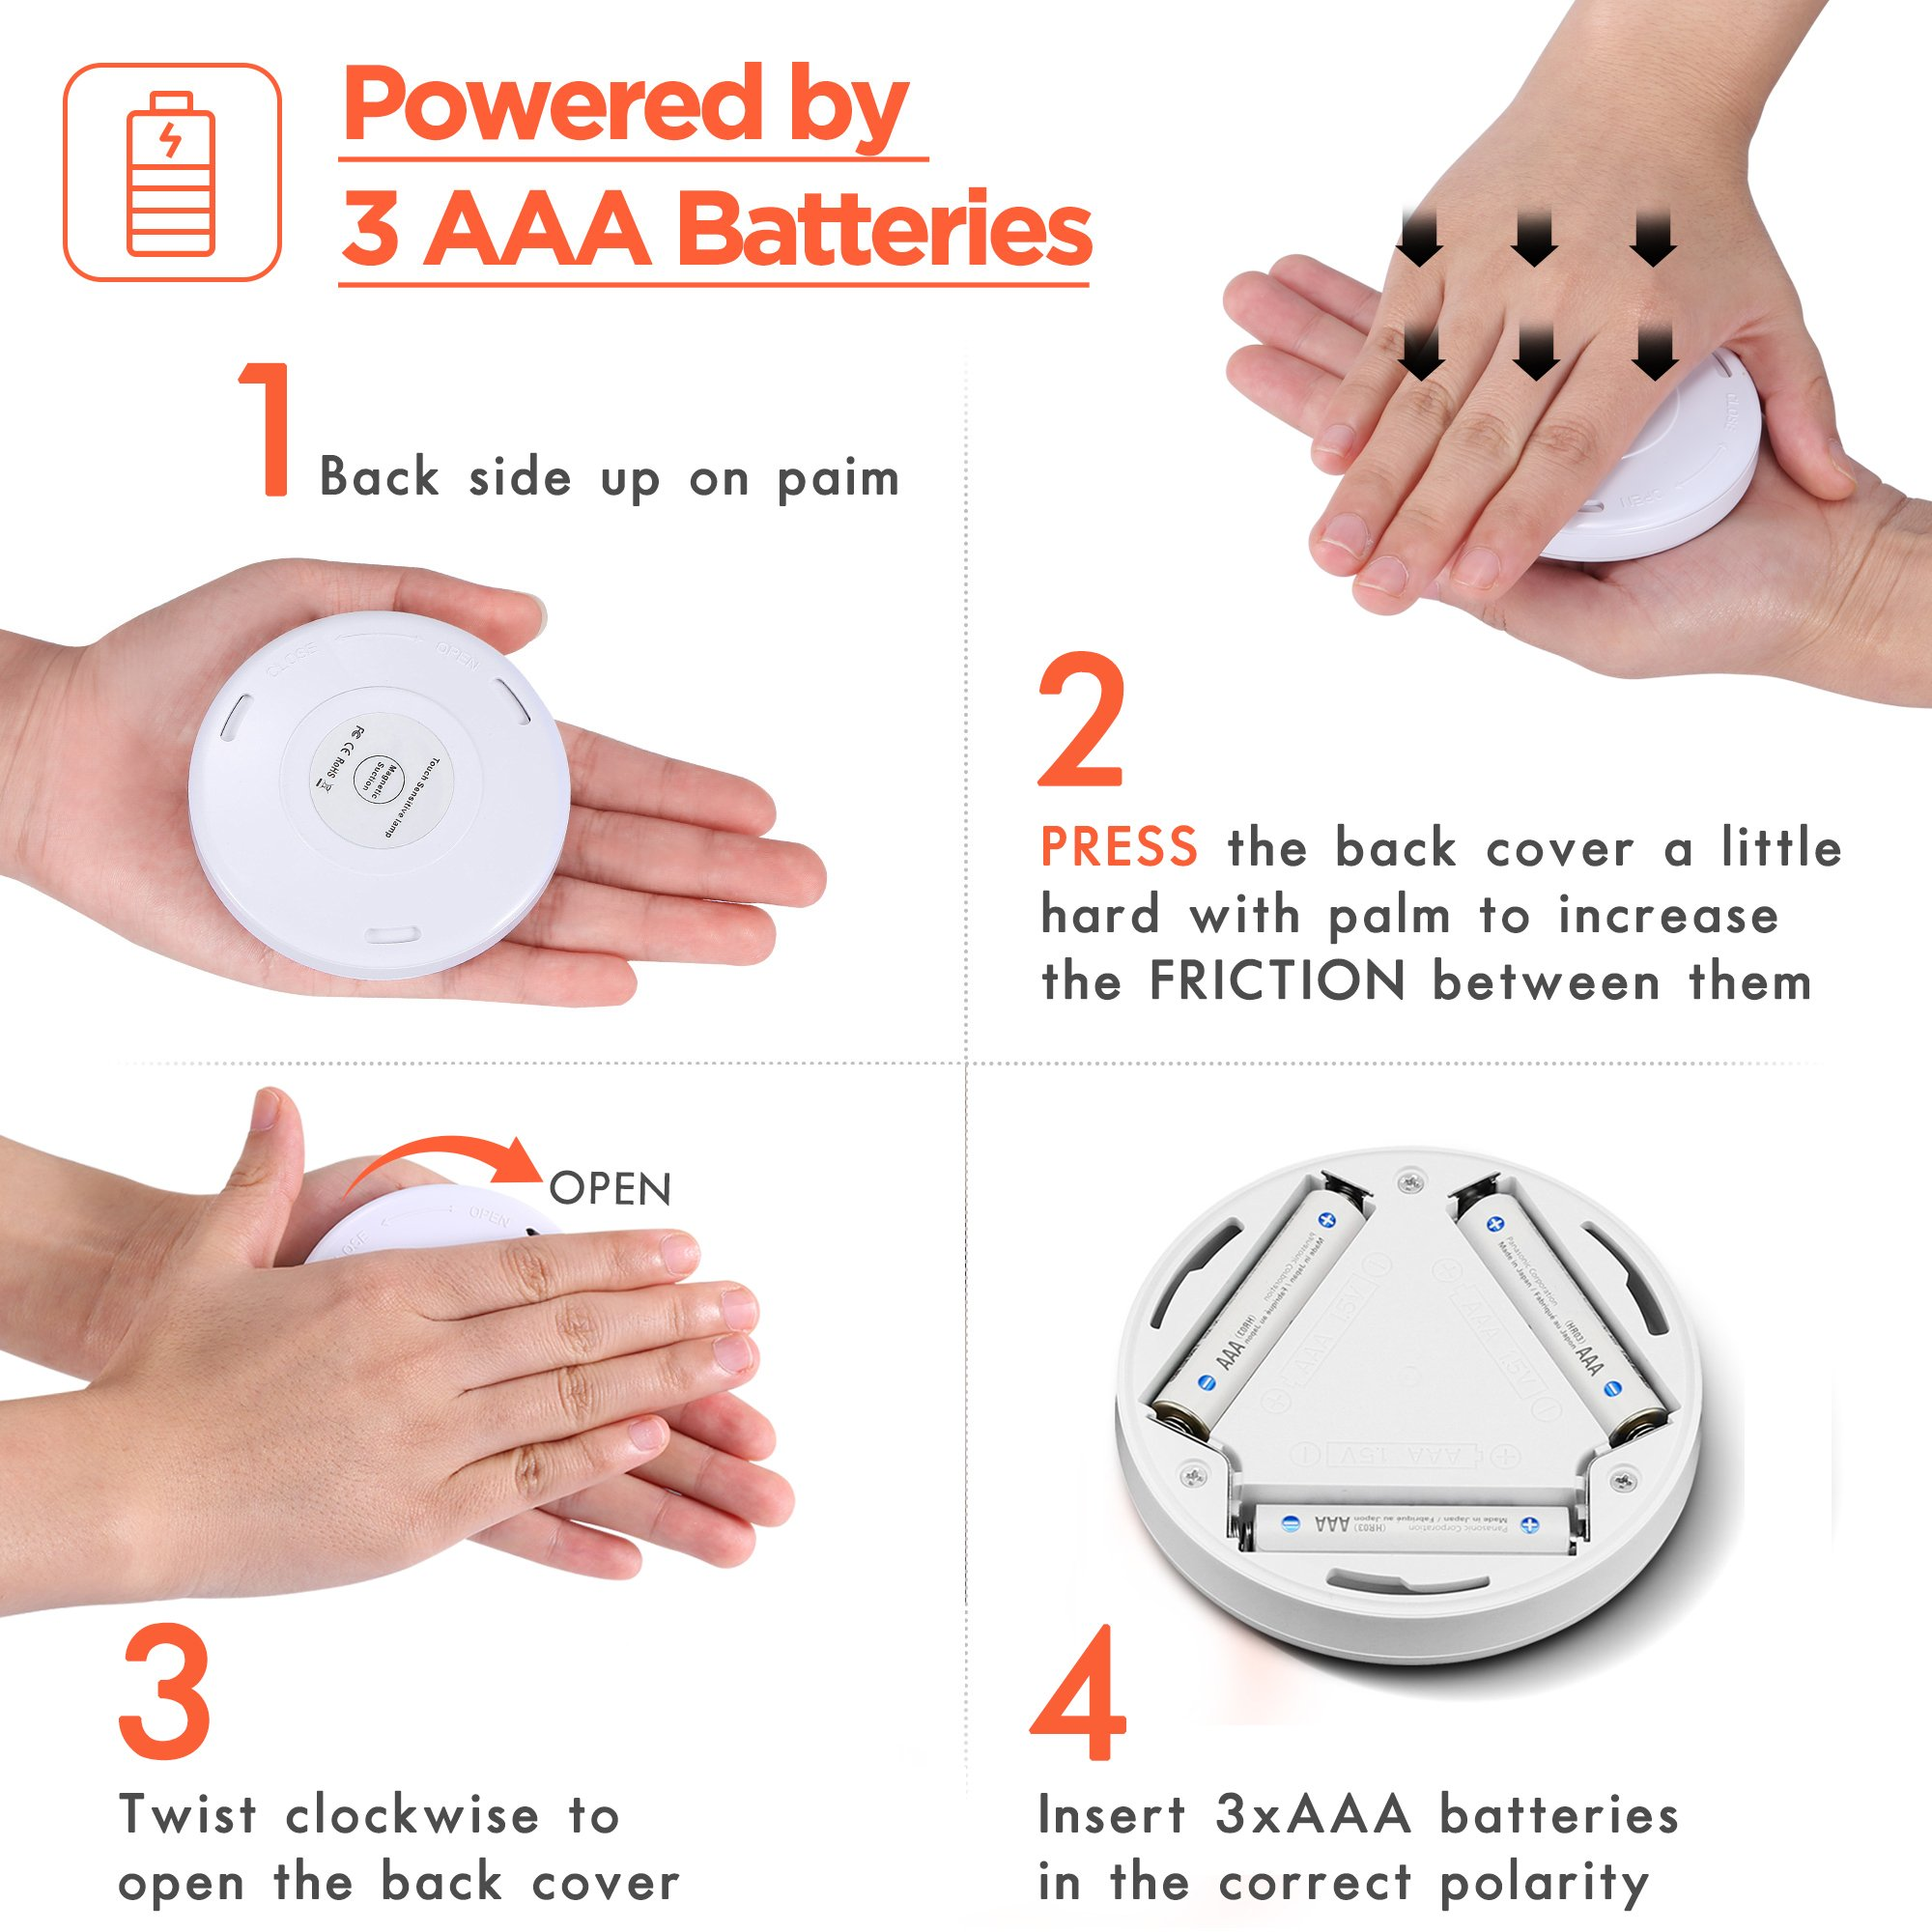 Sycees Touch Activated LED Puck Lights, Dimmable, Battery Operated, Stick on Anywhere, Warm White (2700K), 3-Pack by SYCEES (Image #5)